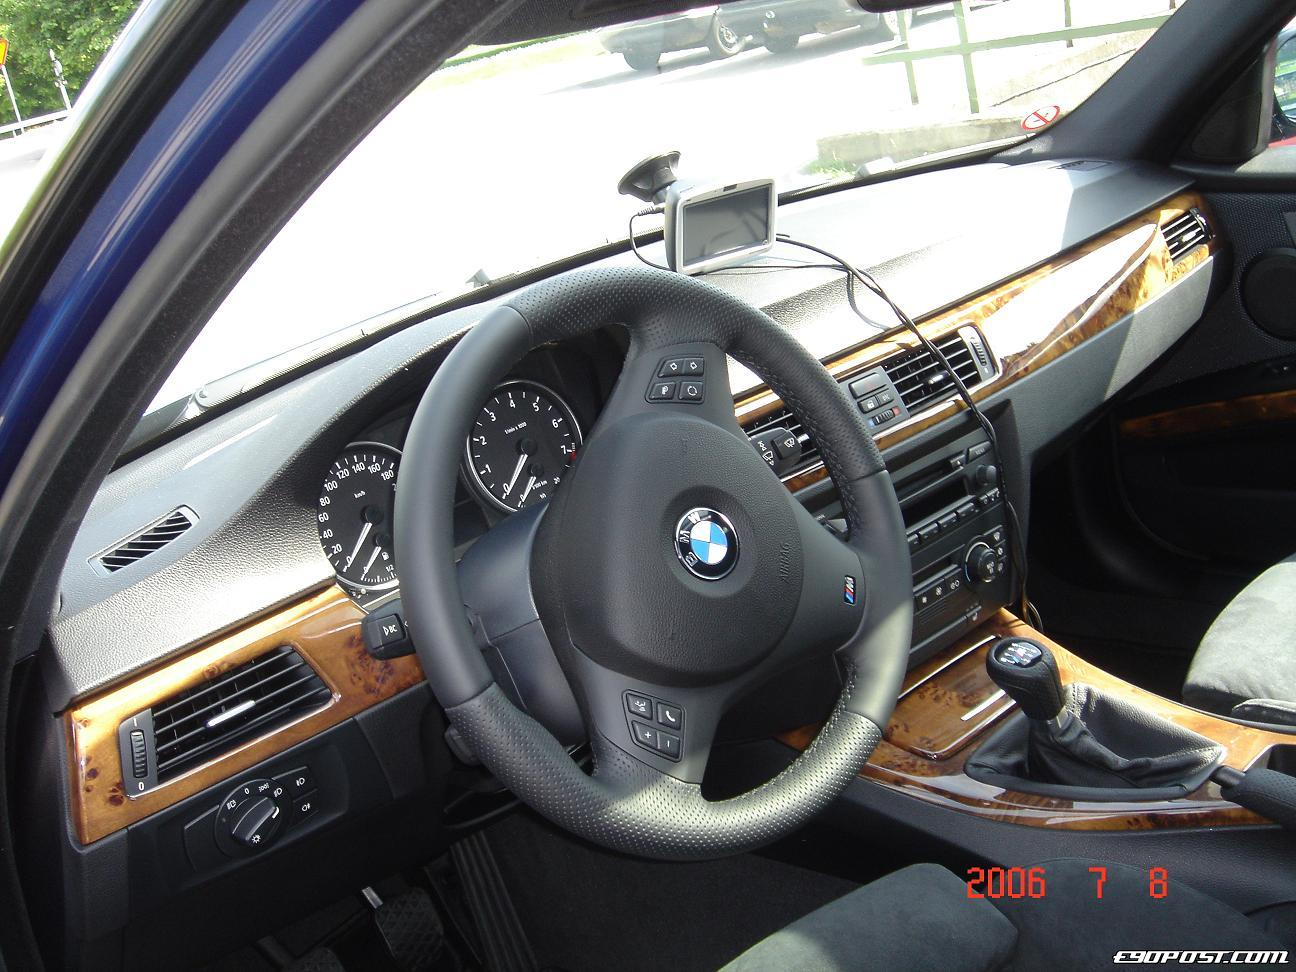 Abcs BMW I BIMMERPOST Garage - Bmw 325i manual